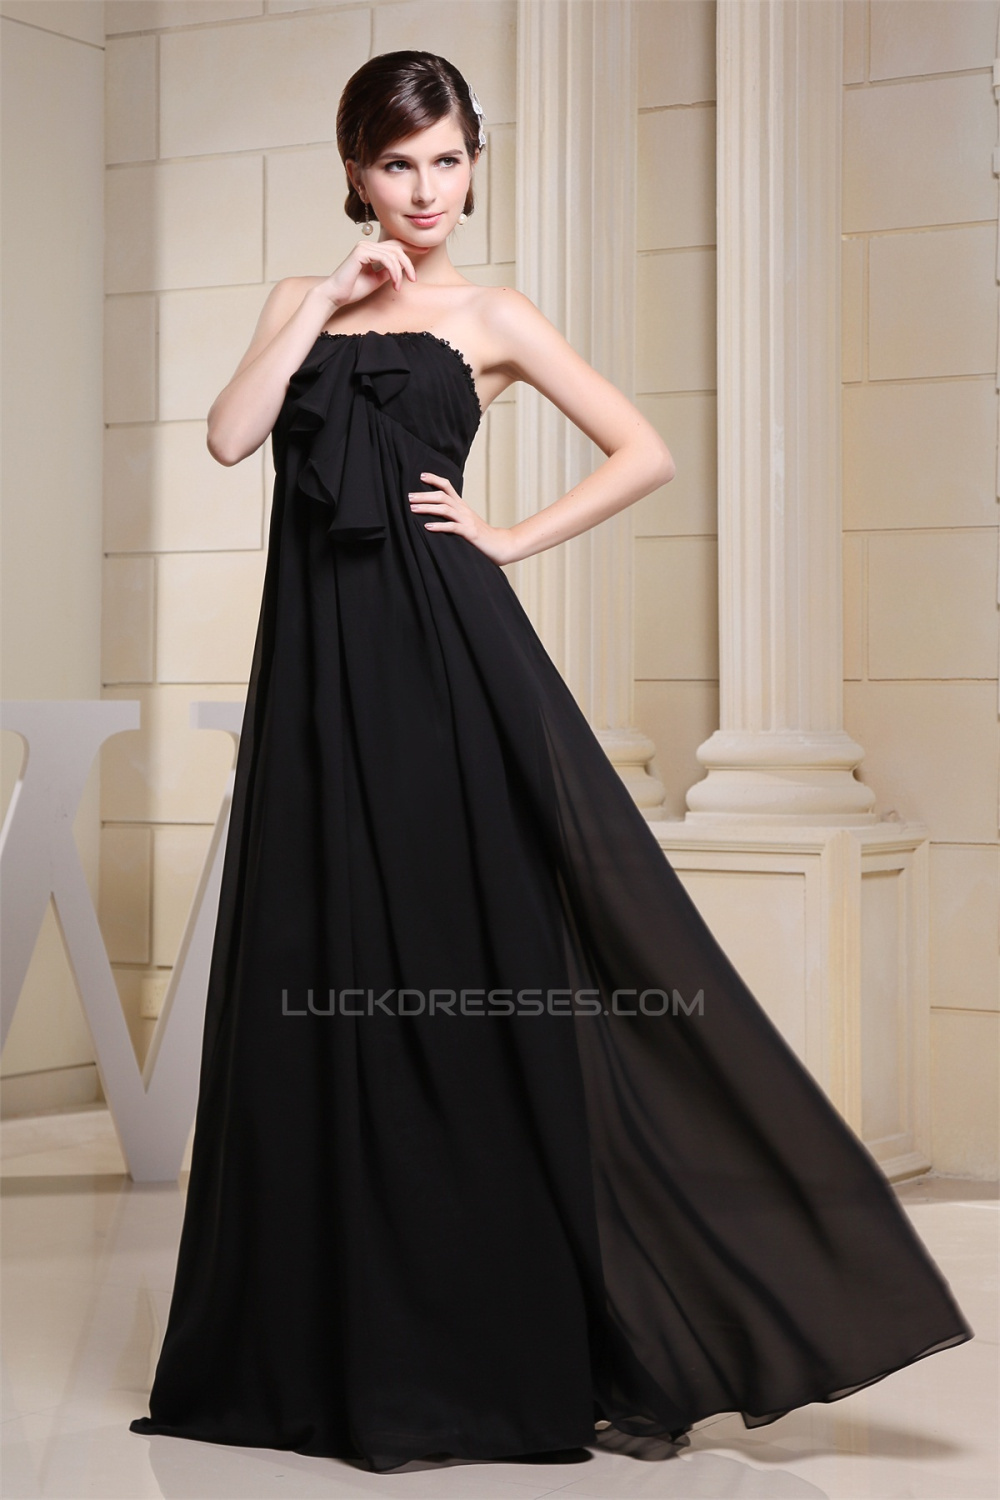 Strapless long black chiffon maternity bridesmaid evening dresses empire strapless long black chiffon maternity bridesmaid evening dresses 02010034 ombrellifo Gallery